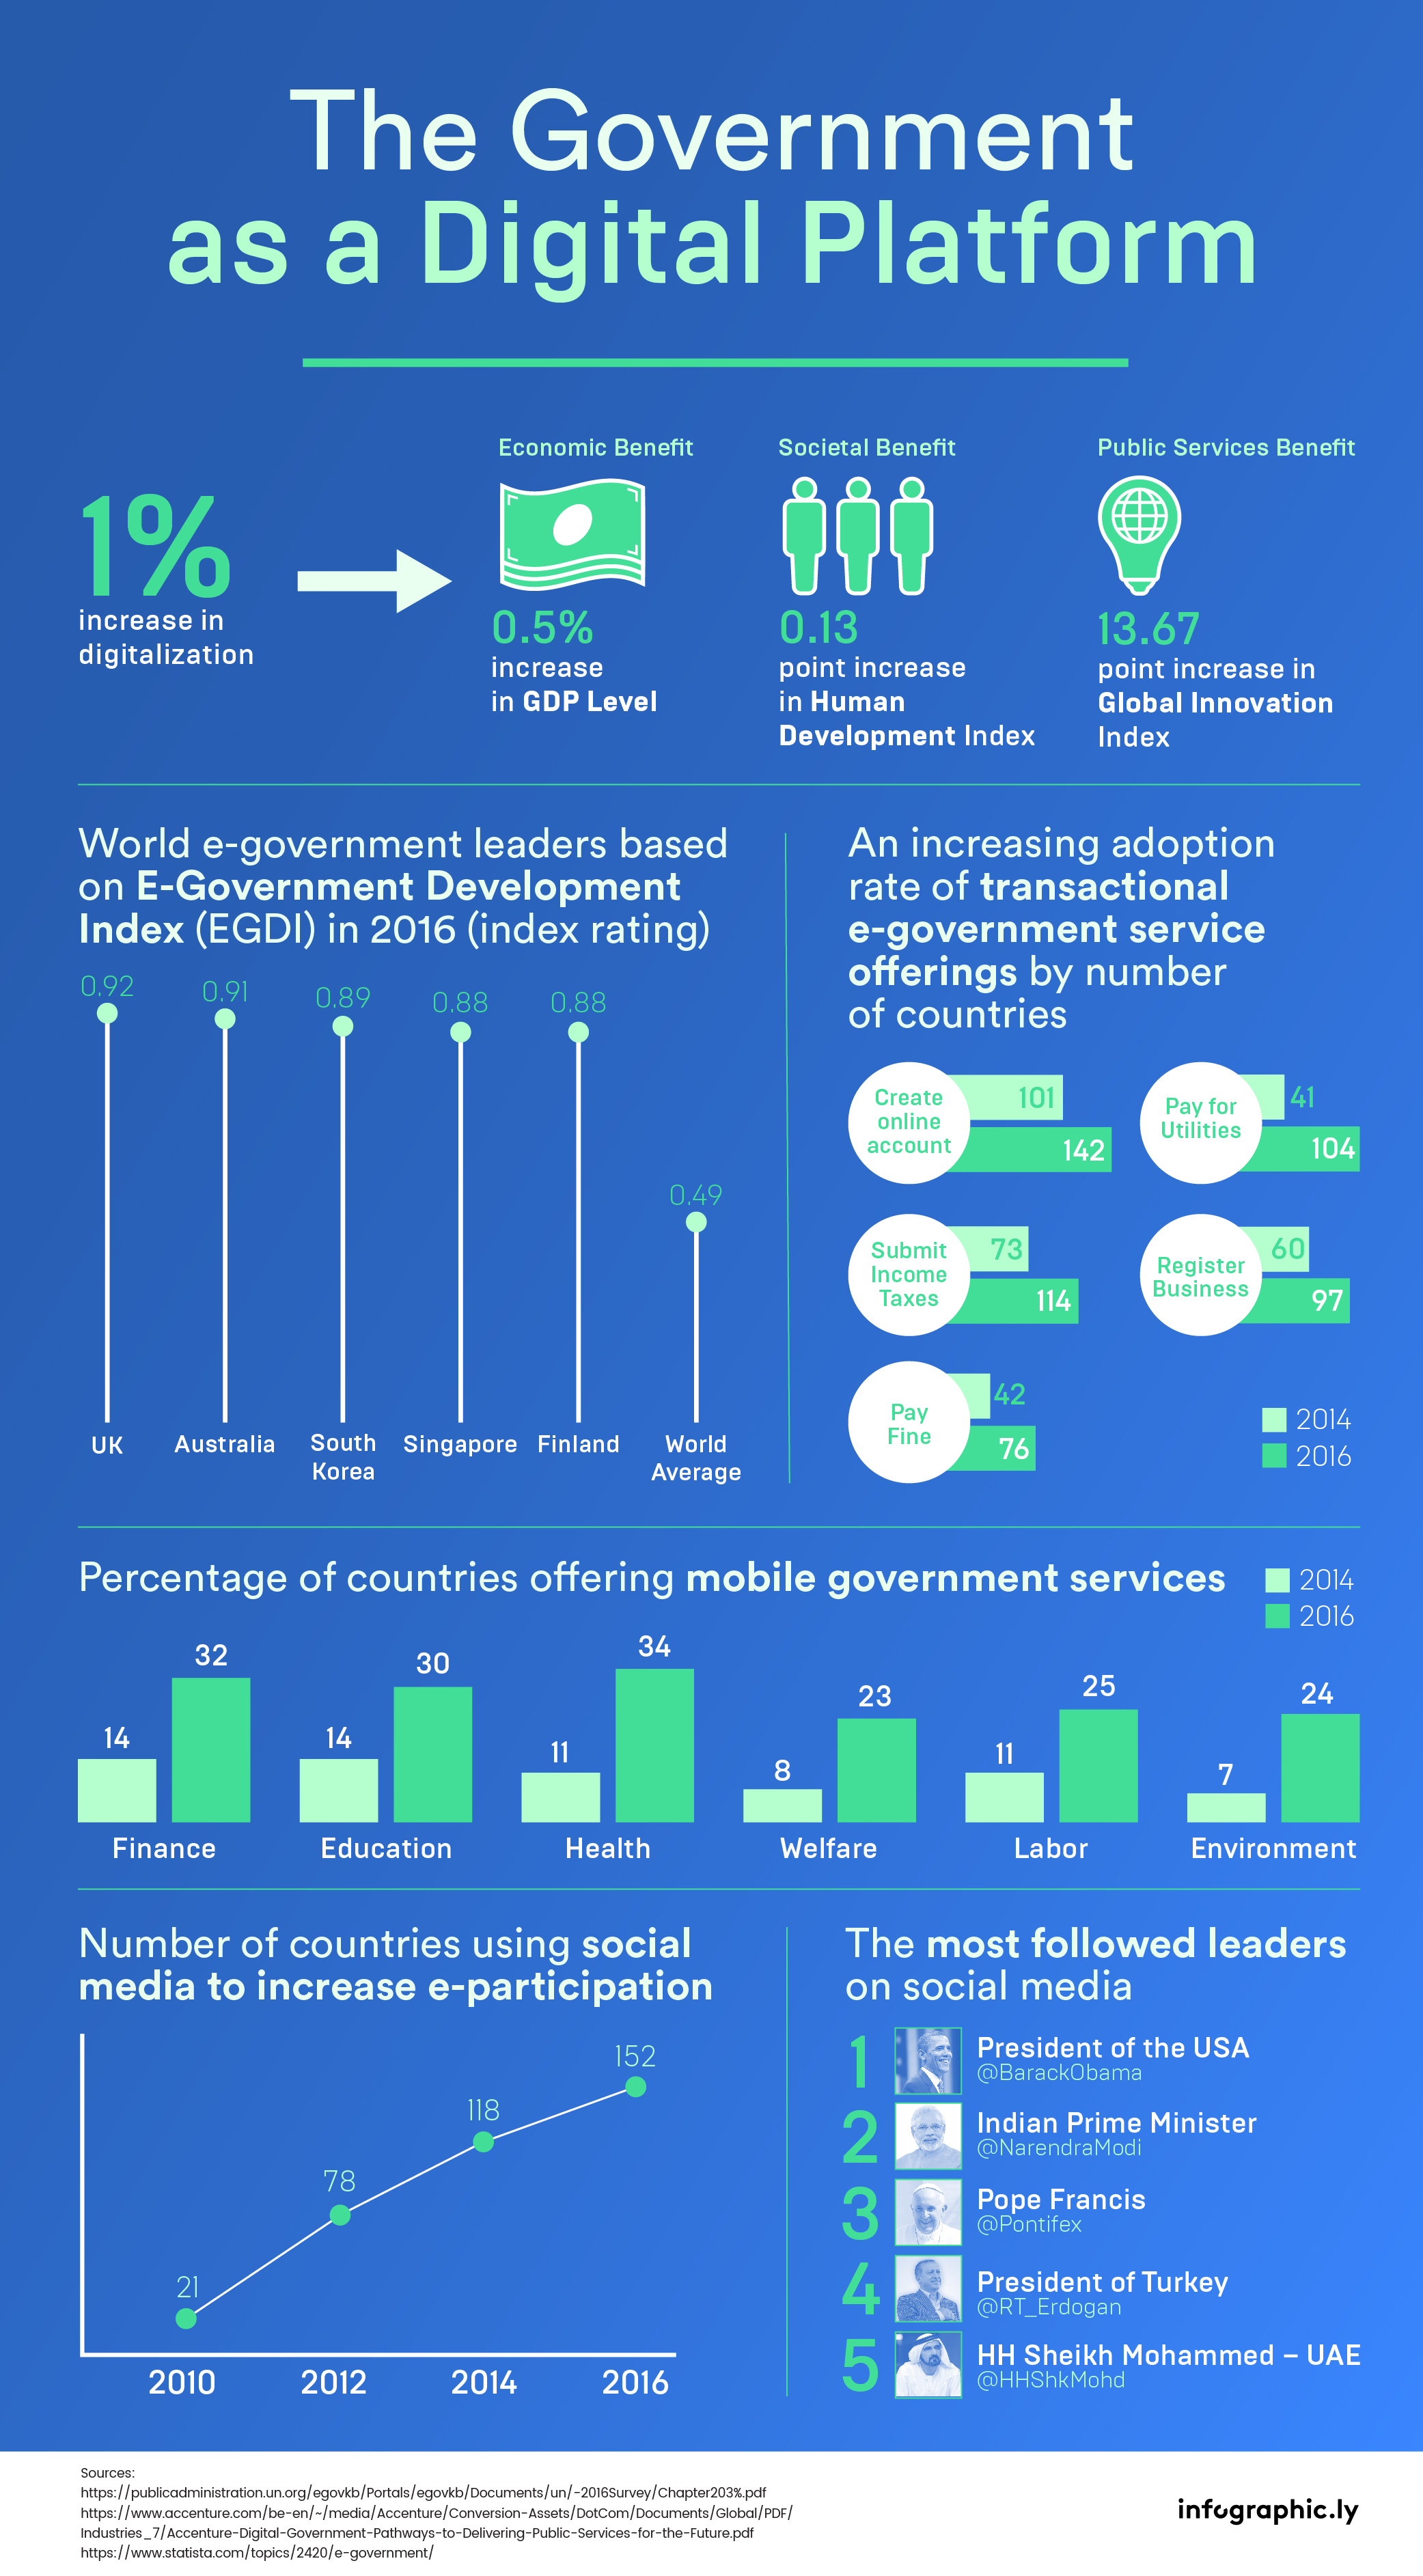 [INFOGRAPHIC] The Government as a Digital Platform